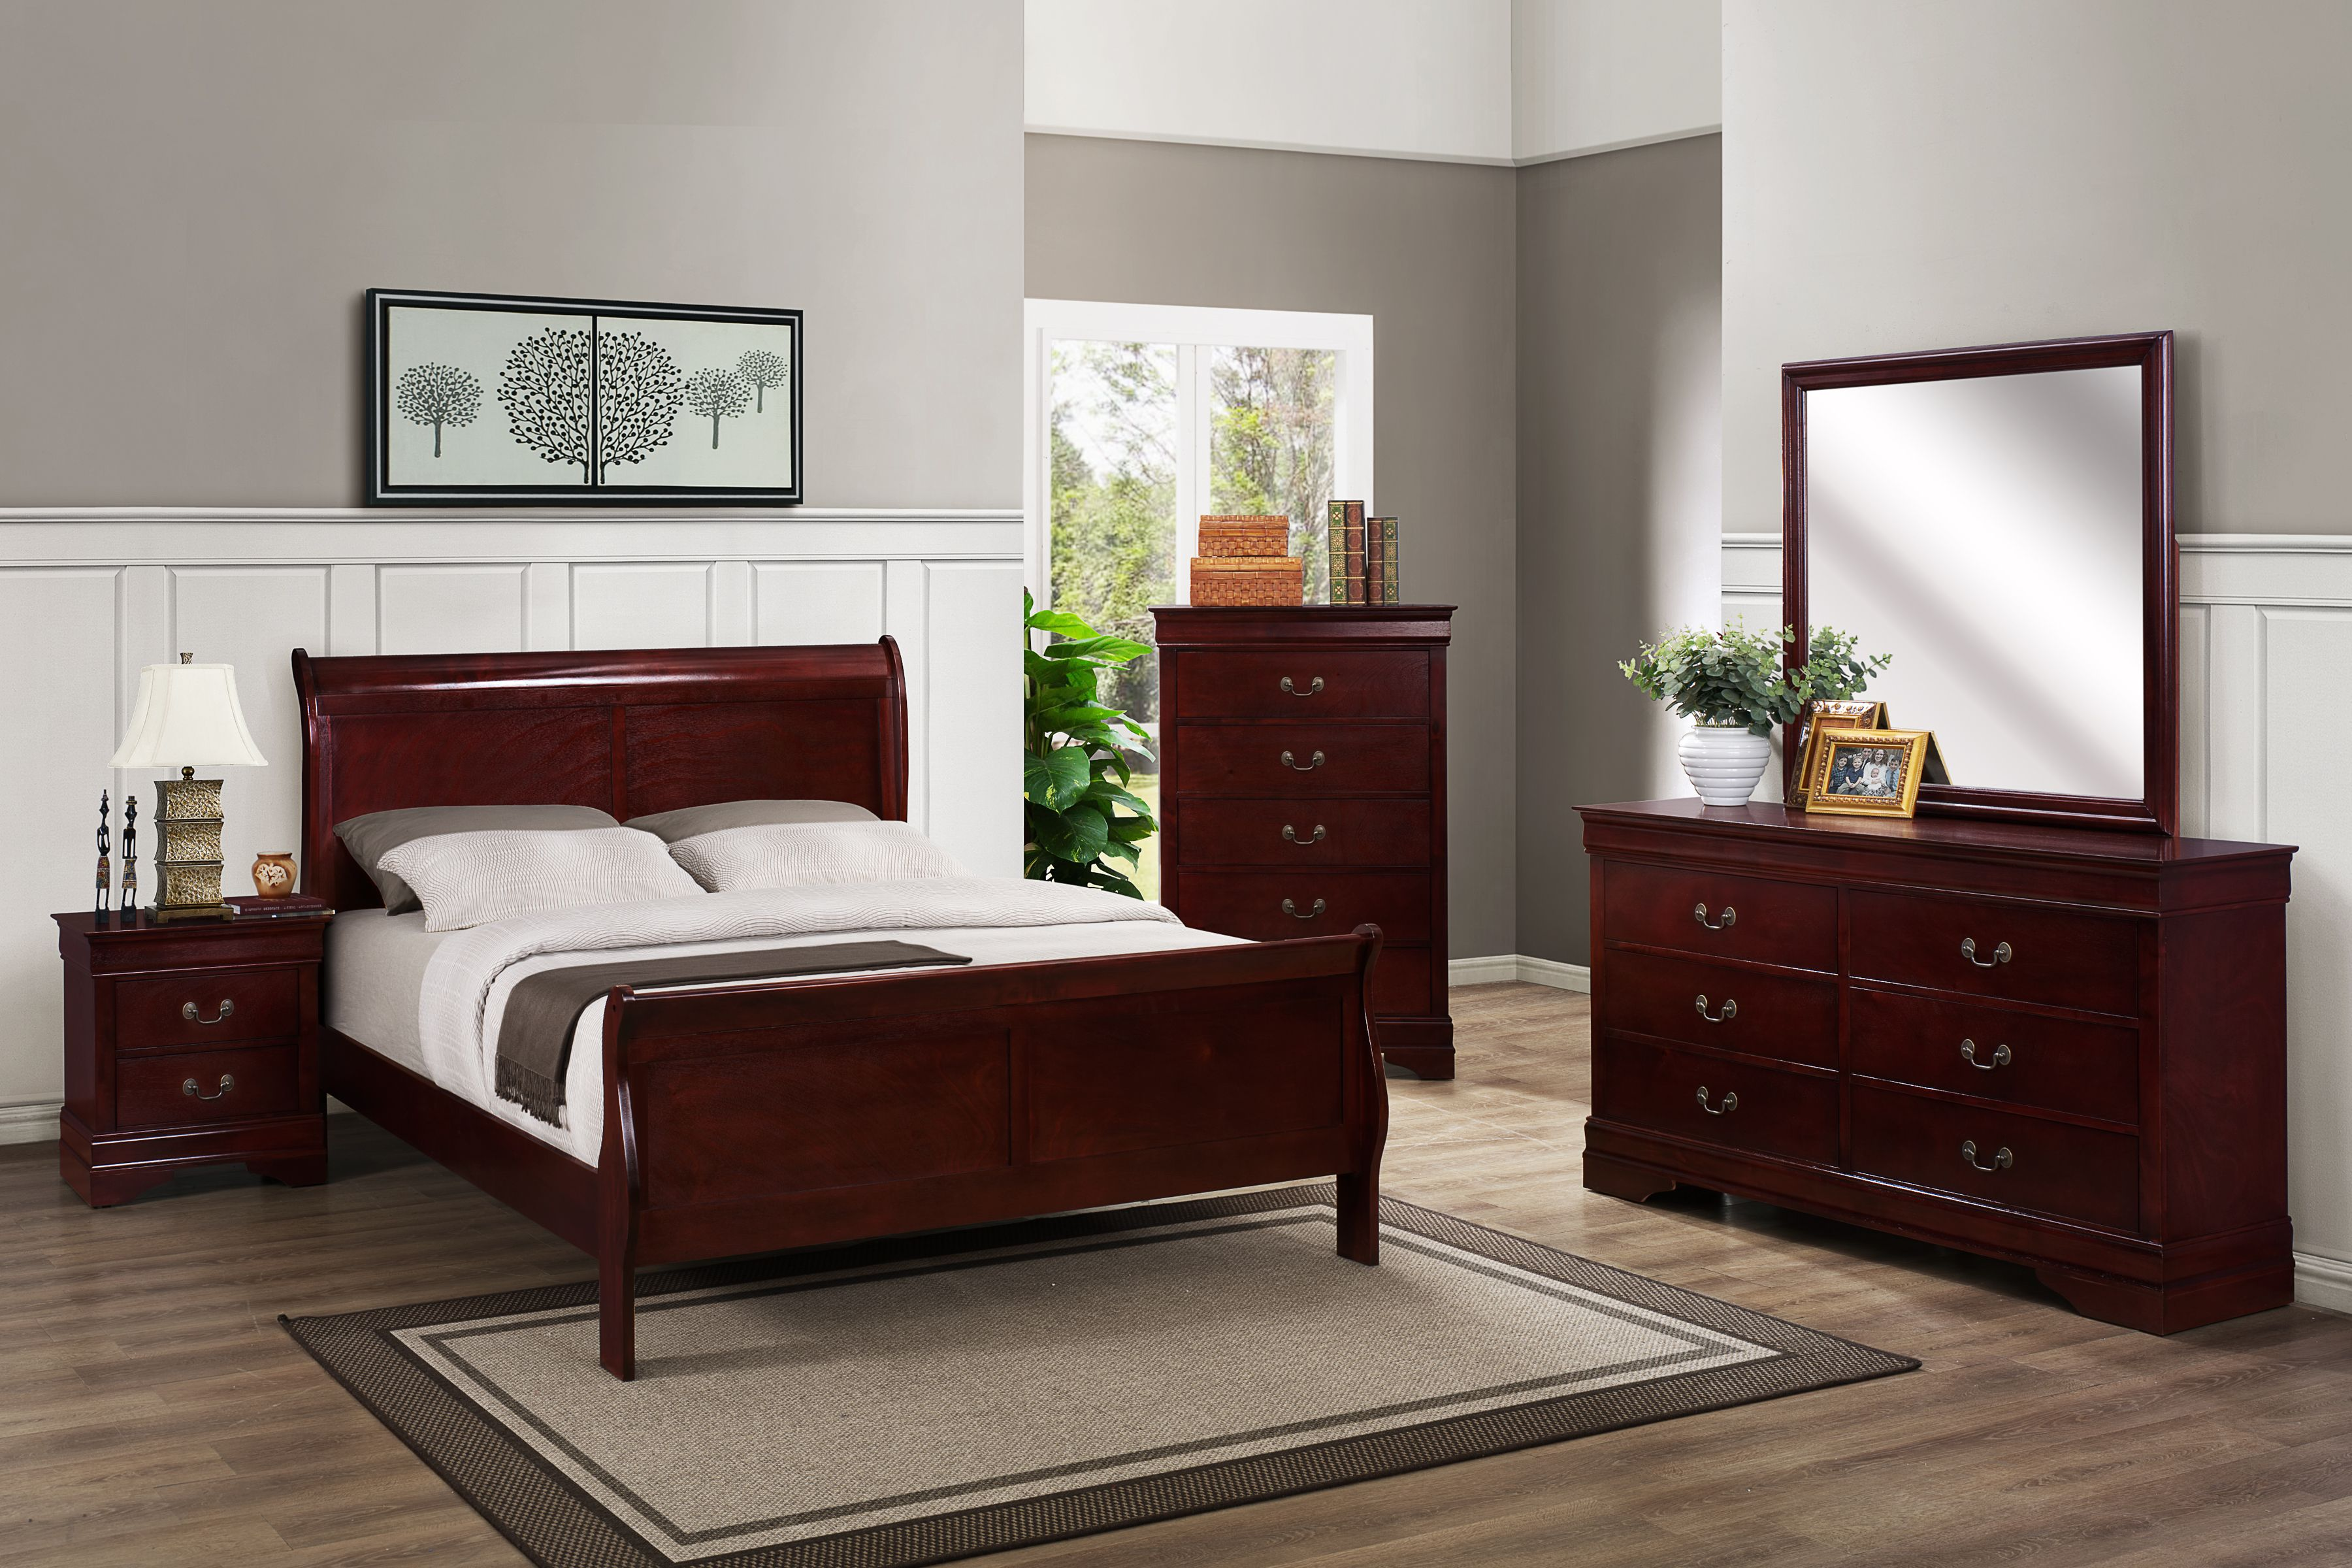 Labour Day Long Weekend Sale Up To 40 Off On All Ashley Furniture  # Tienda De Muebles Weekend